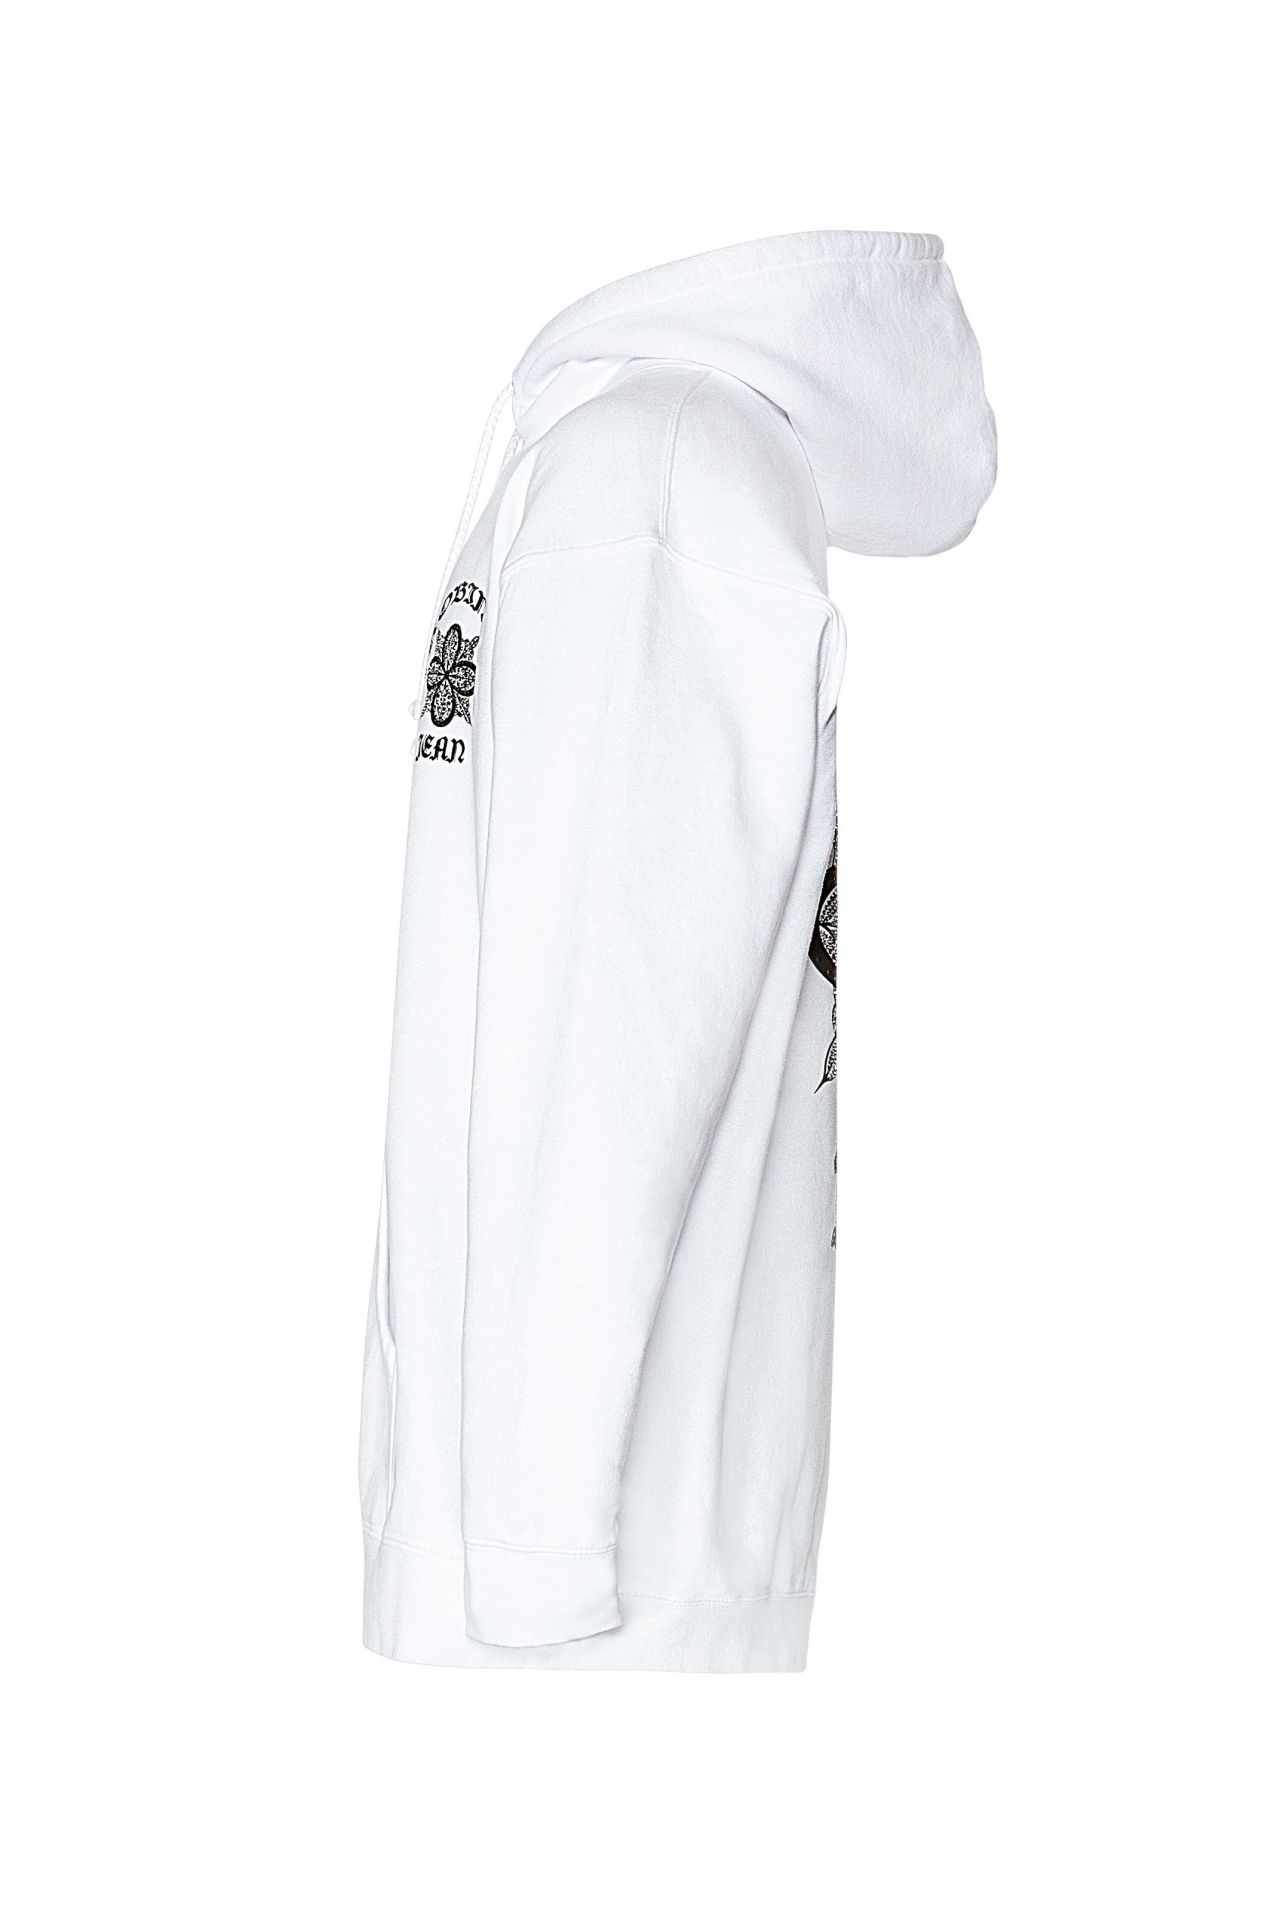 ORNATE HOODIE WITH CRYSTALS IN WHITE